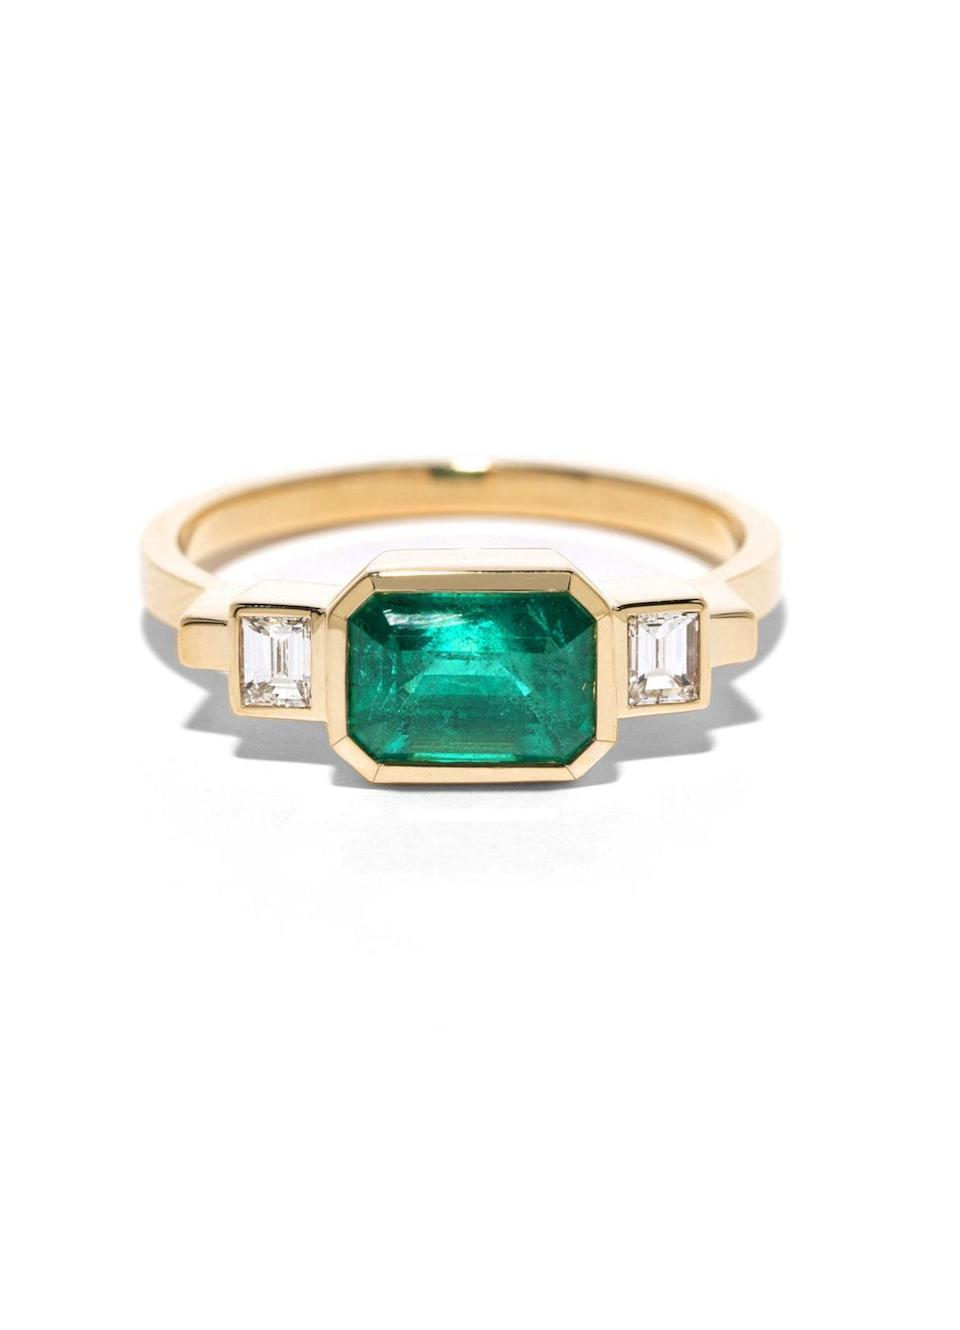 """Once thought of only as an accent, gemstones are now taking center stage in the engagement ring world. Isom Johnson predicts they'll """"become staples for engagement rings."""" $4200, Azlee. <a href=""""http://azleejewelry.com/rings/emerald-and-baguette-diamond-ring"""" rel=""""nofollow noopener"""" target=""""_blank"""" data-ylk=""""slk:Get it now!"""" class=""""link rapid-noclick-resp"""">Get it now!</a>"""